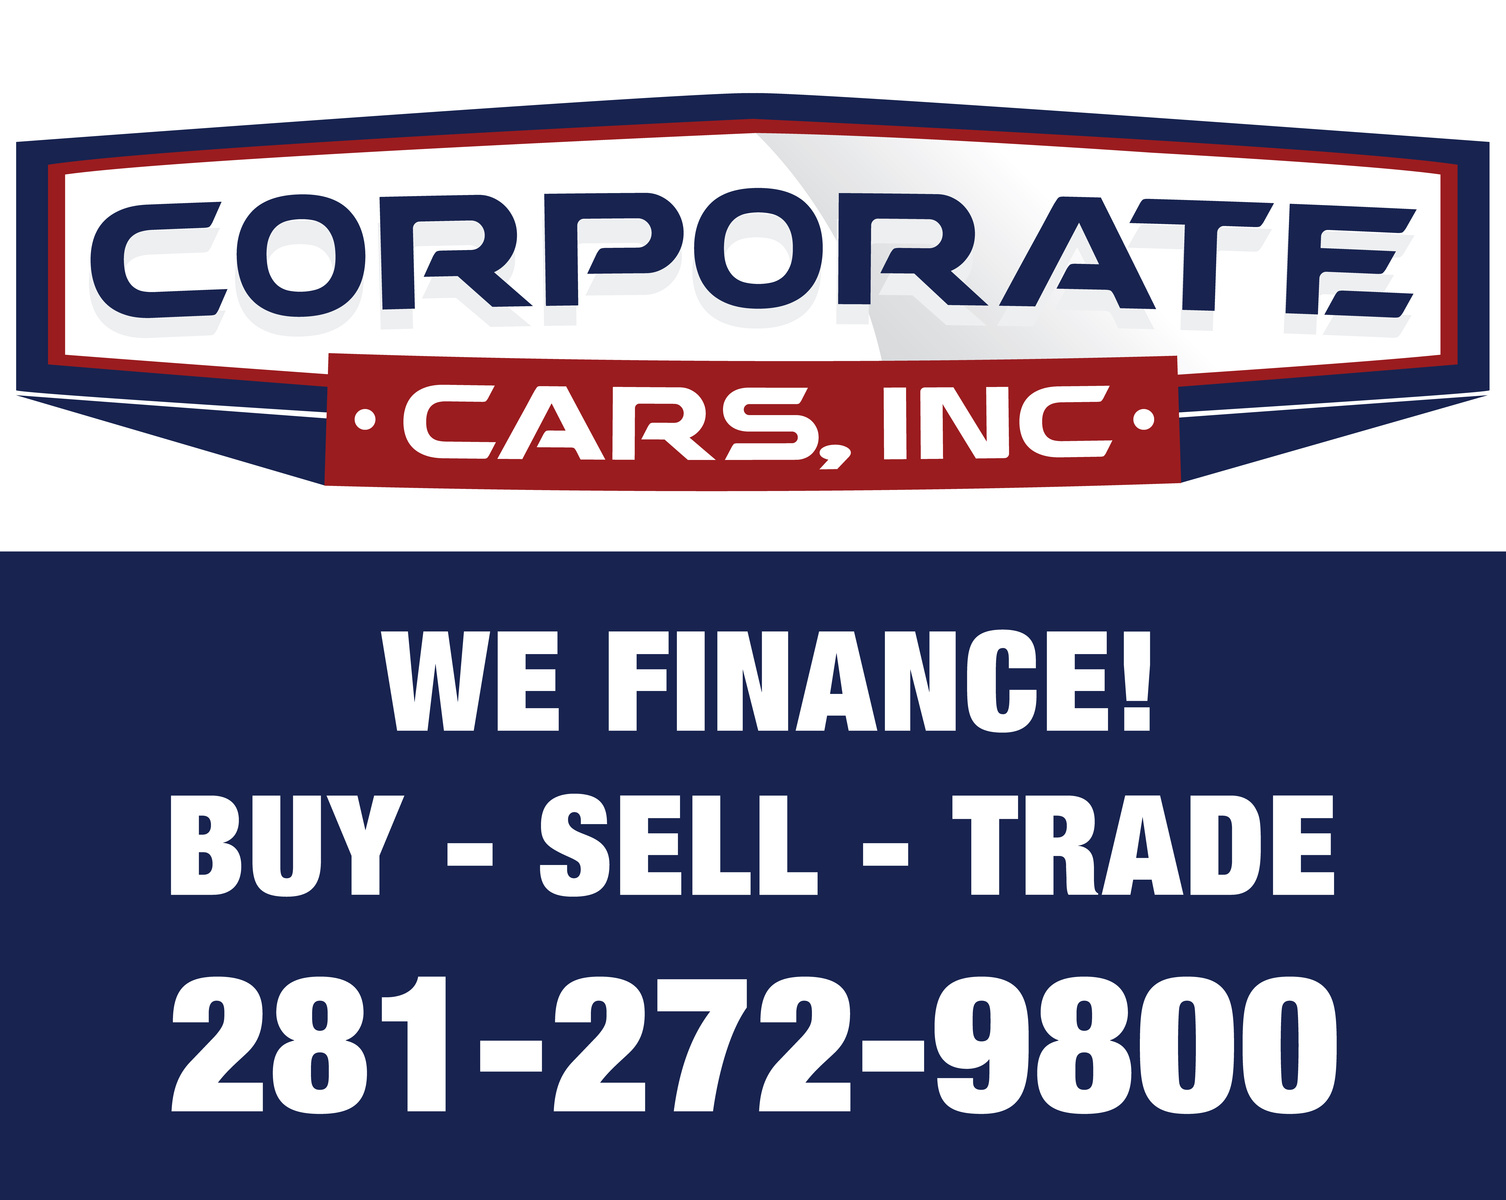 Corporate Cars Inc - Houston, TX: Read Consumer reviews, Browse Used ...